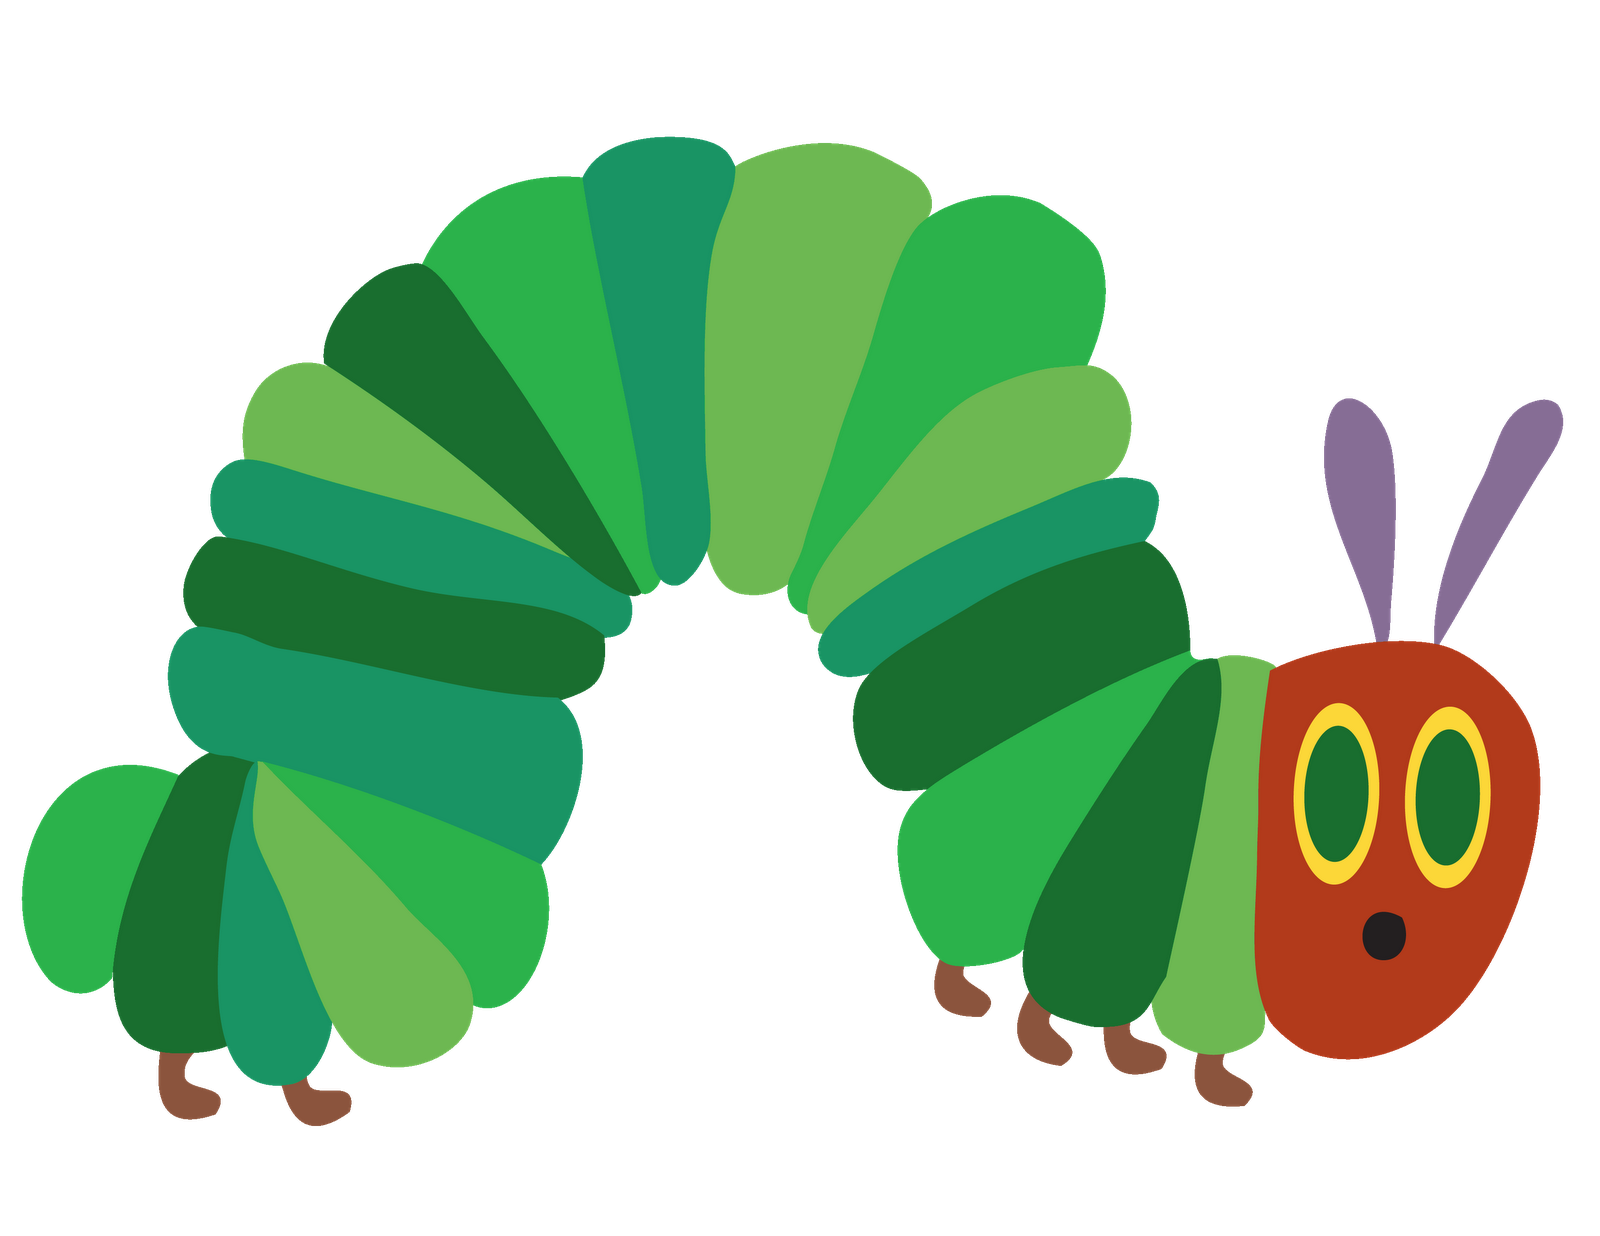 Hungry caterpillar sun clipart graphic royalty free hungry caterpillar - Google Search | Art journals | Pinterest ... graphic royalty free